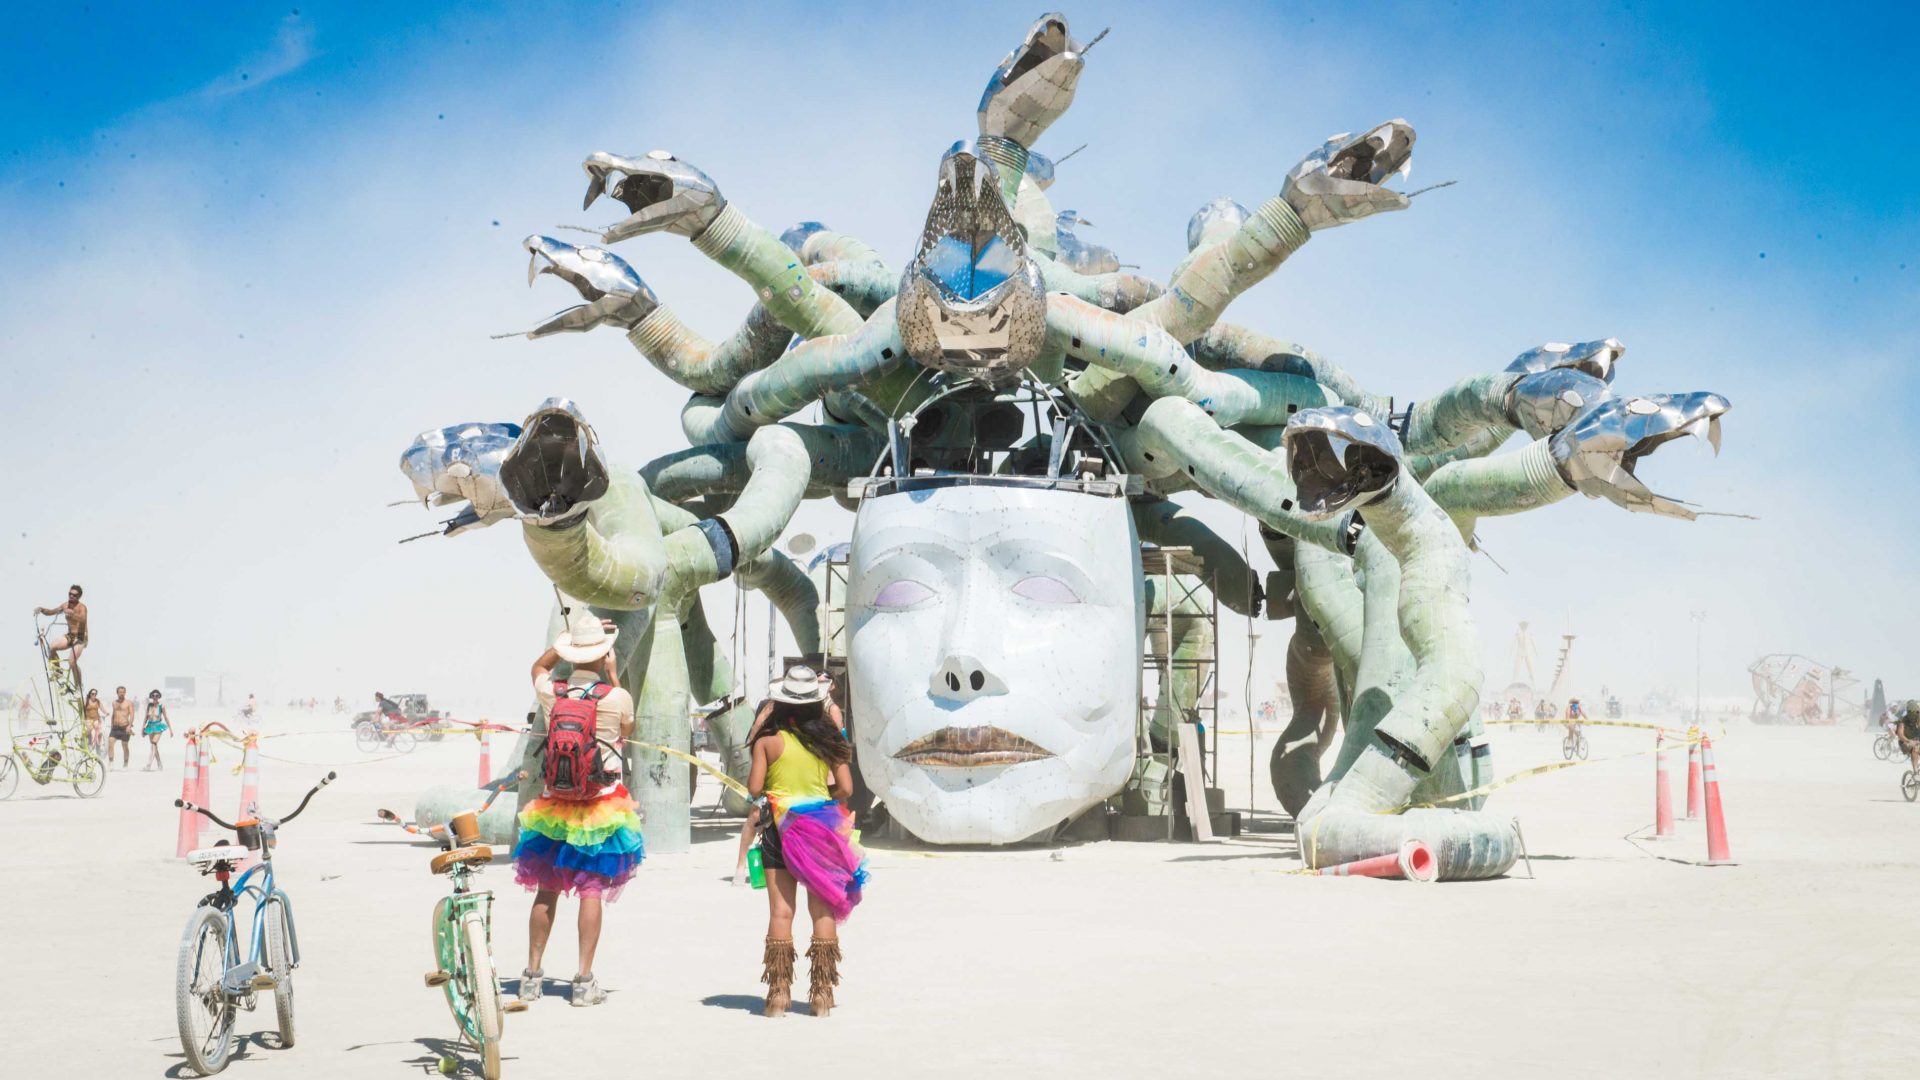 A couple in rainbow tutus looks at an art installation at Burning Man.